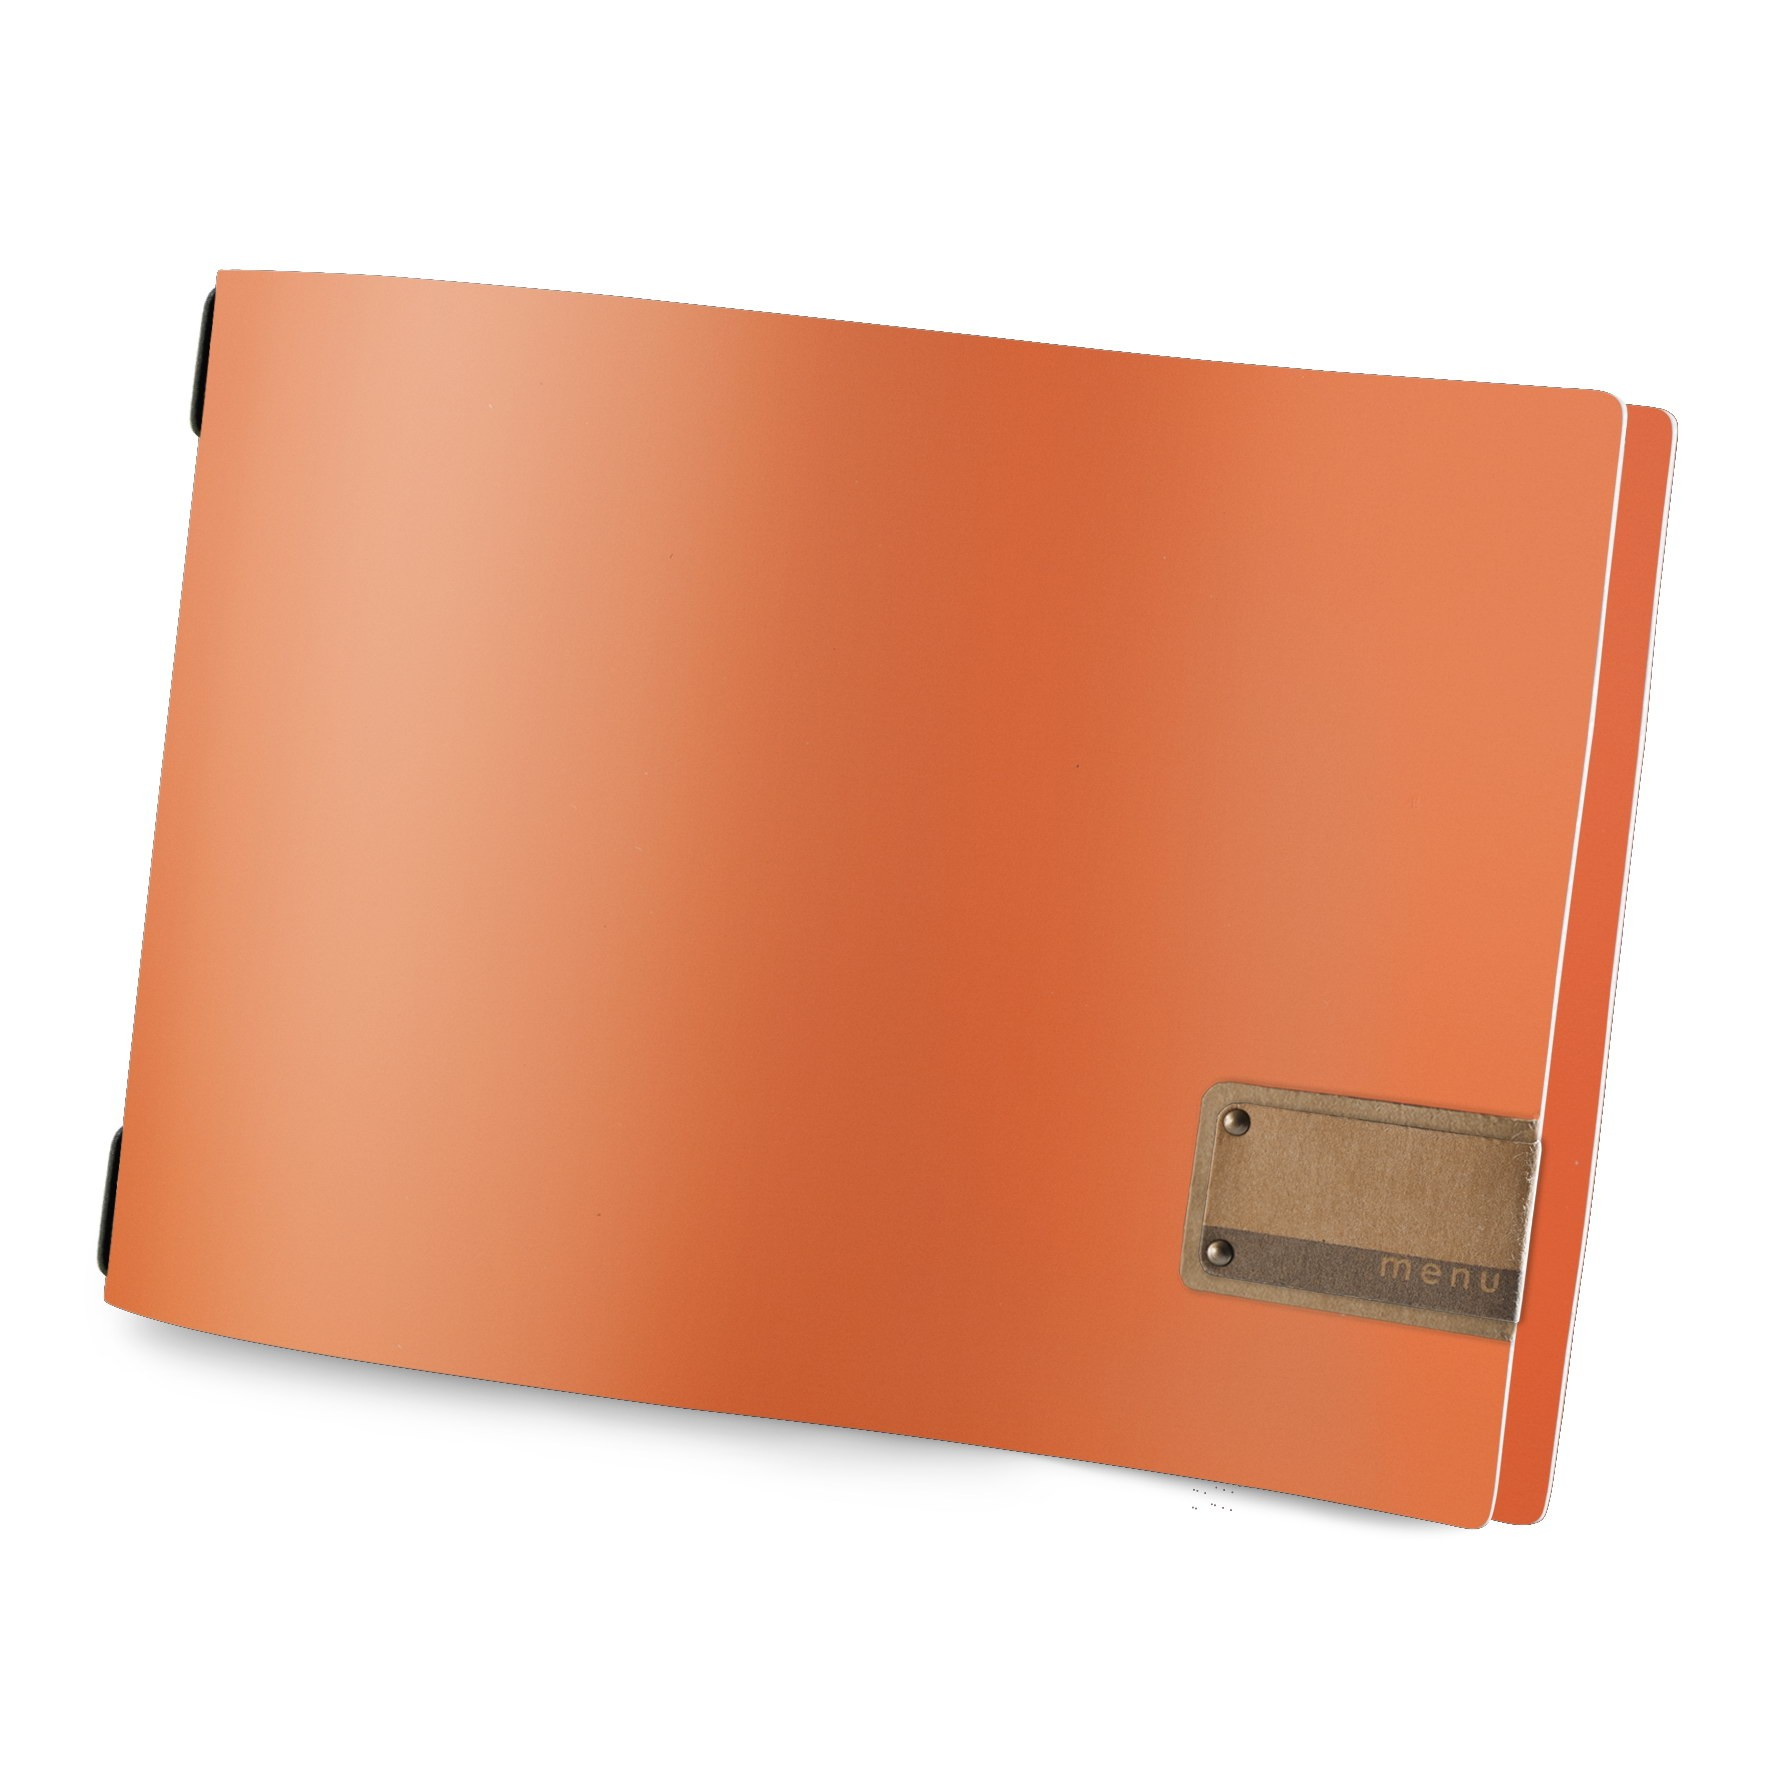 Protège menu A4 HORIZONTAL Fashion orange aspect lisse